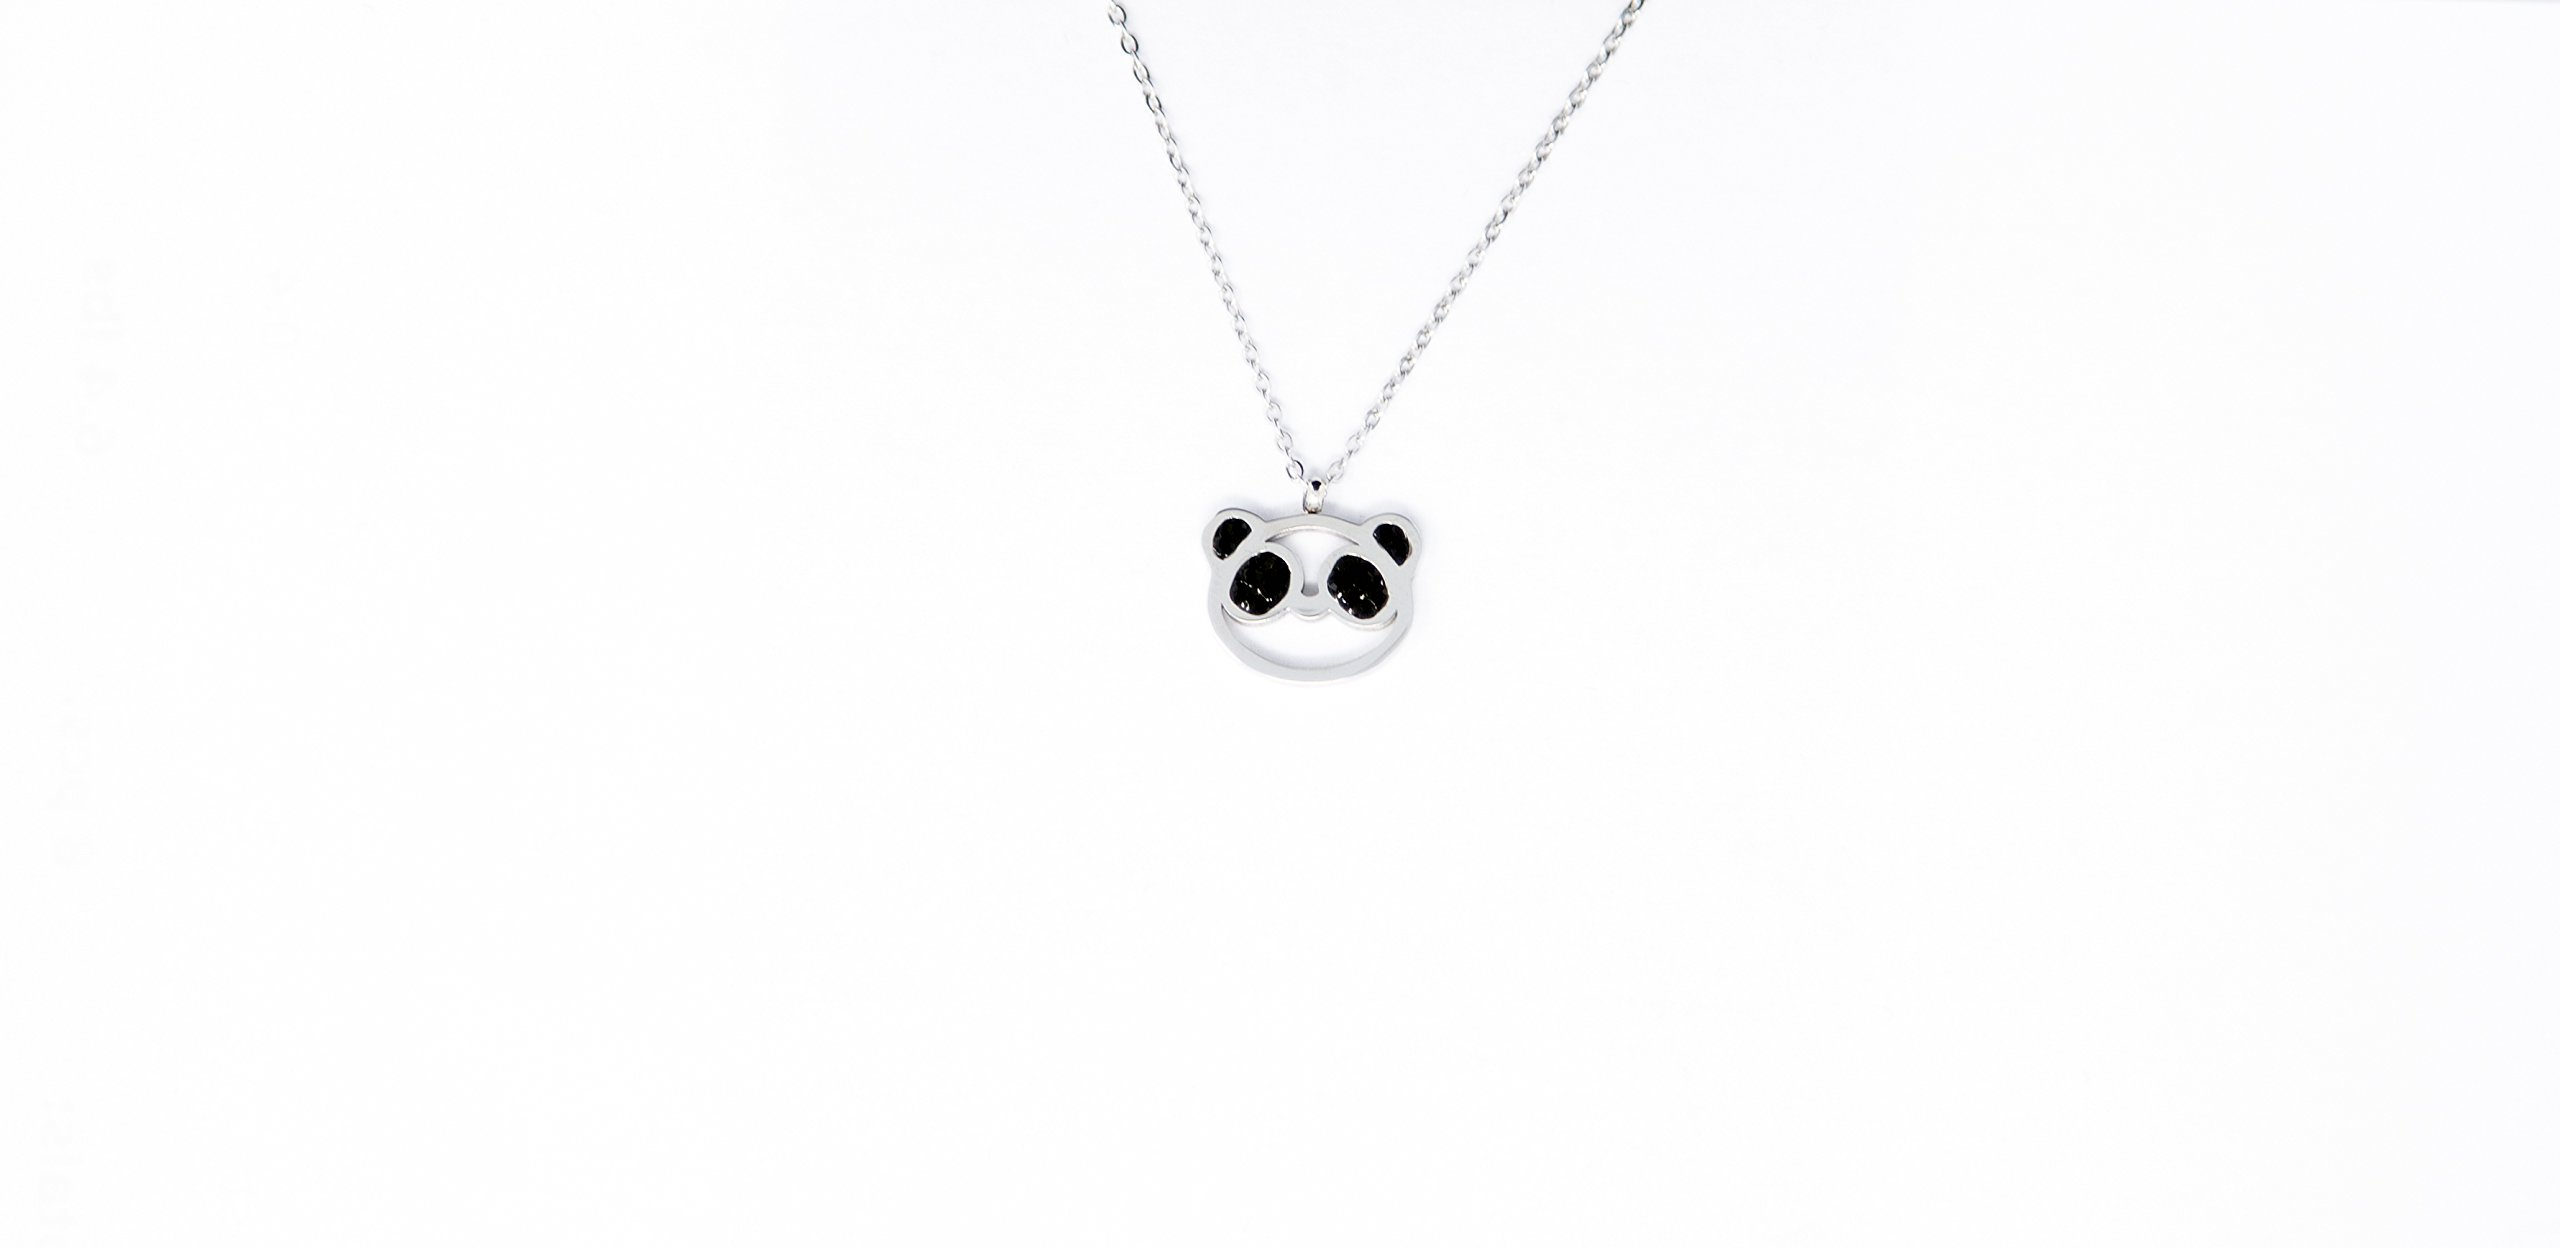 Inspirational Necklaces for Women - Panda Charm Pendant with Unique Gift Box and Inspiring Mantra Quote Card - Jewelry Stainless Steel for Women Necklace Charm - College Graduation Gifts for Her by Classic Inspirational Jewelry (Image #3)